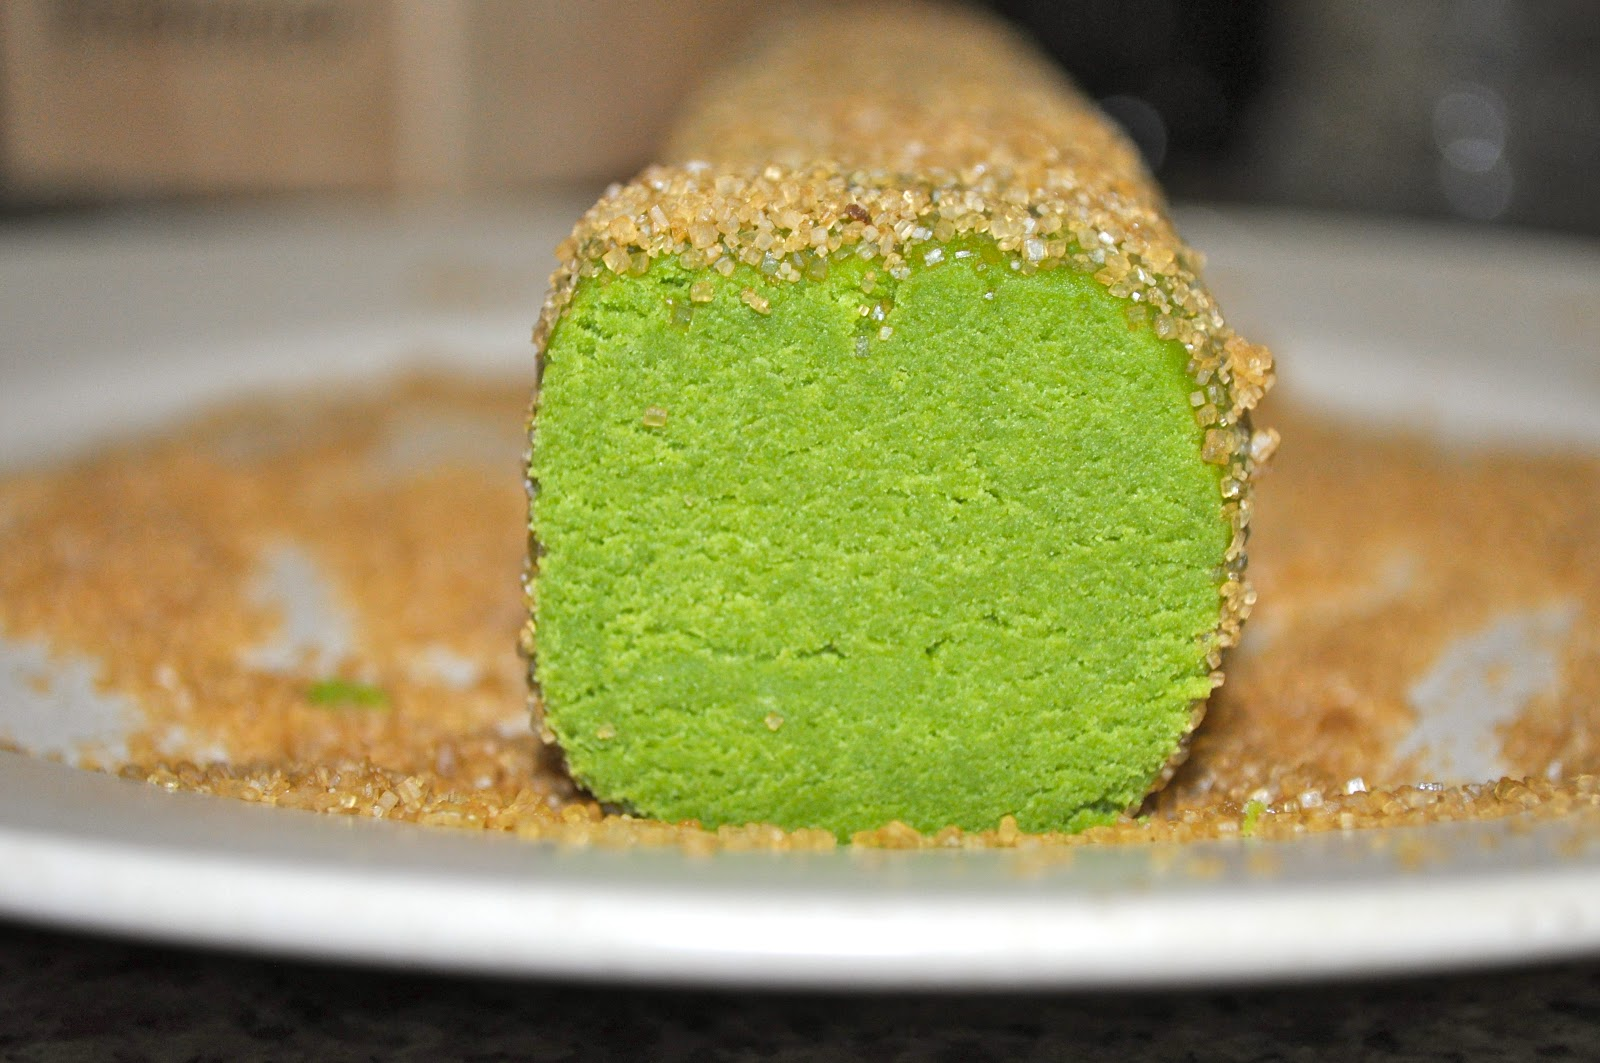 A Handmade Life: Matcha Green Tea Shortbread Cookies